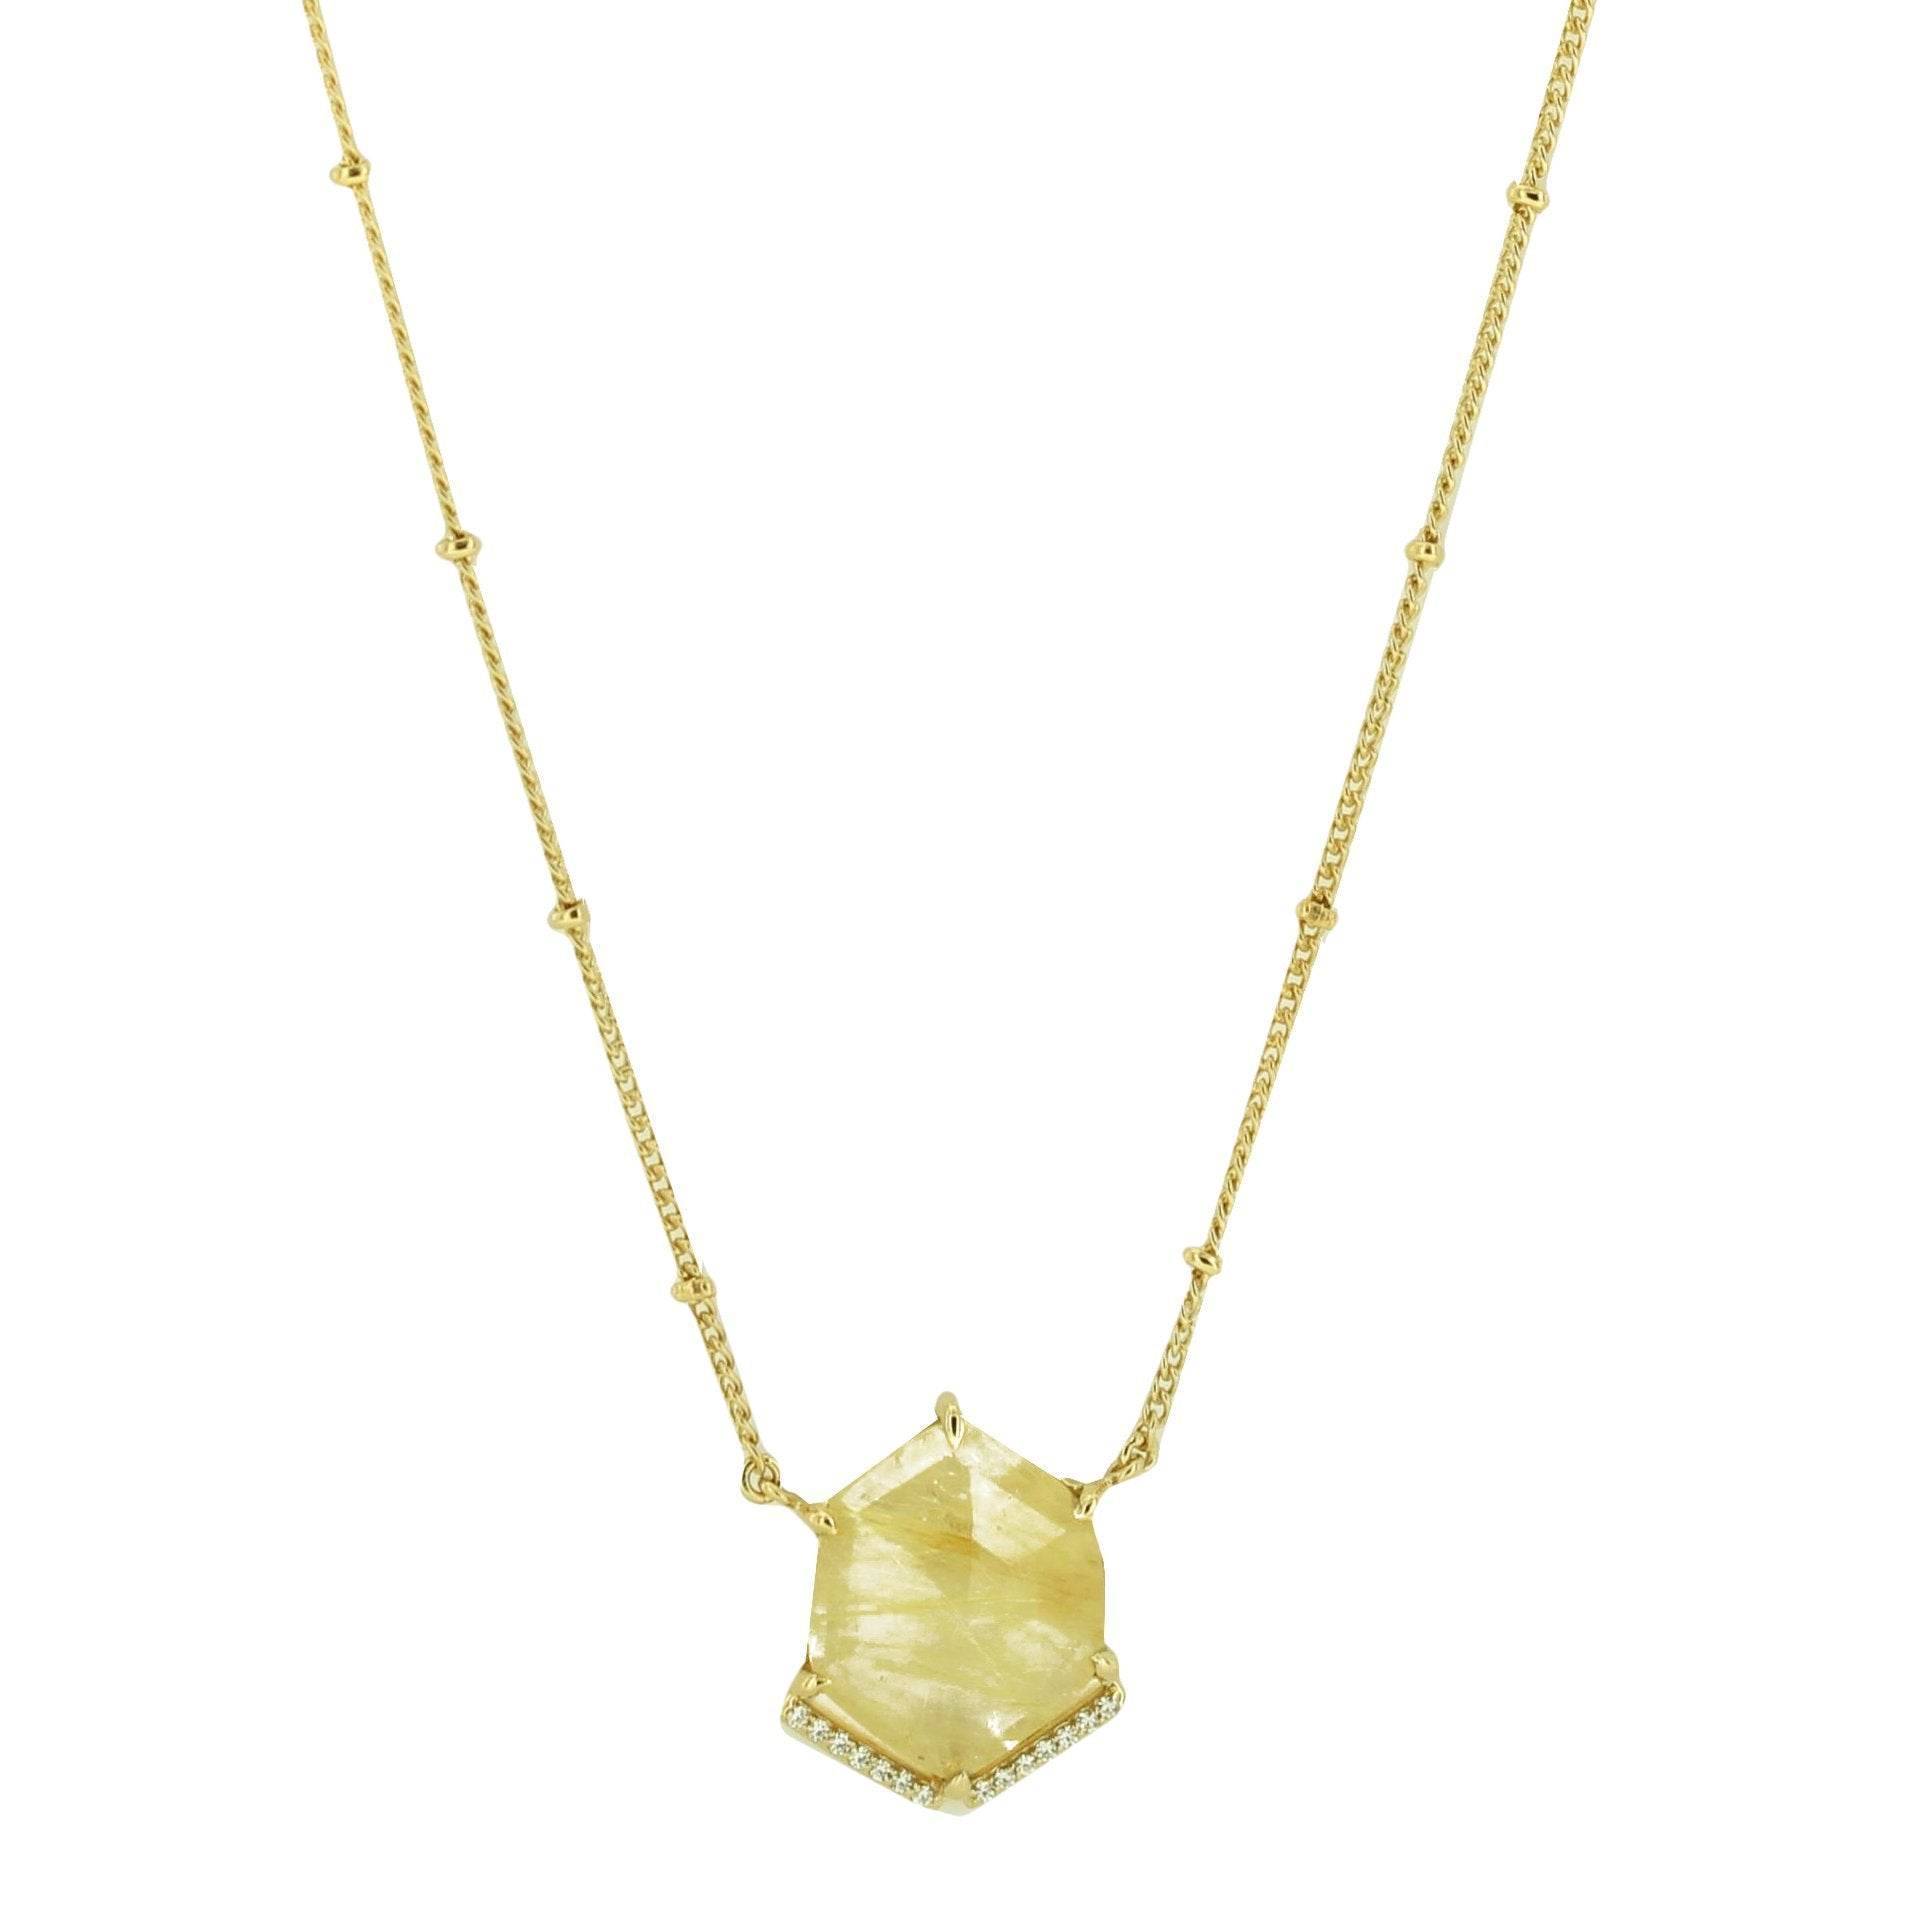 HONOUR SHIELD NECKLACE - GOLDEN RUTILE QUARTZ & GOLD - SO PRETTY CARA COTTER